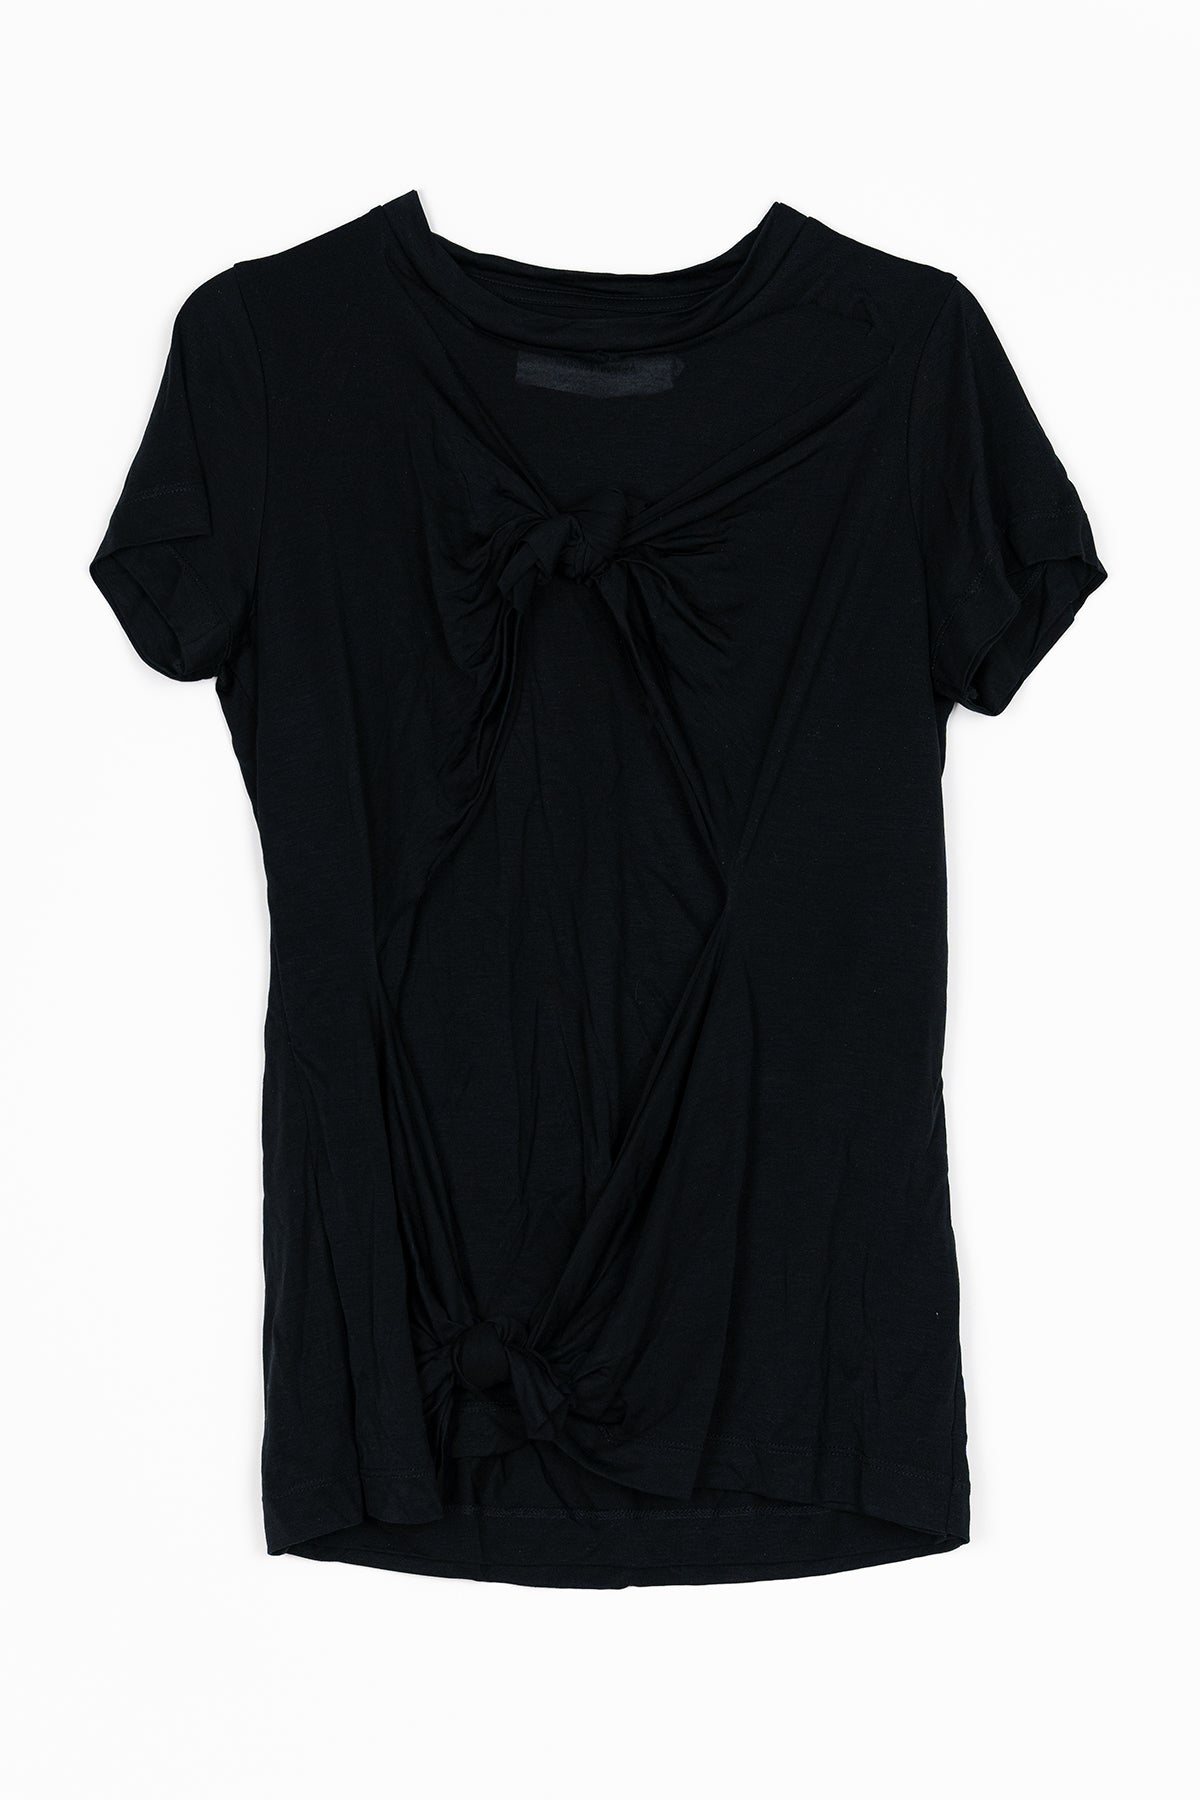 BLACK DOUBLE KNOT T-SHIRT